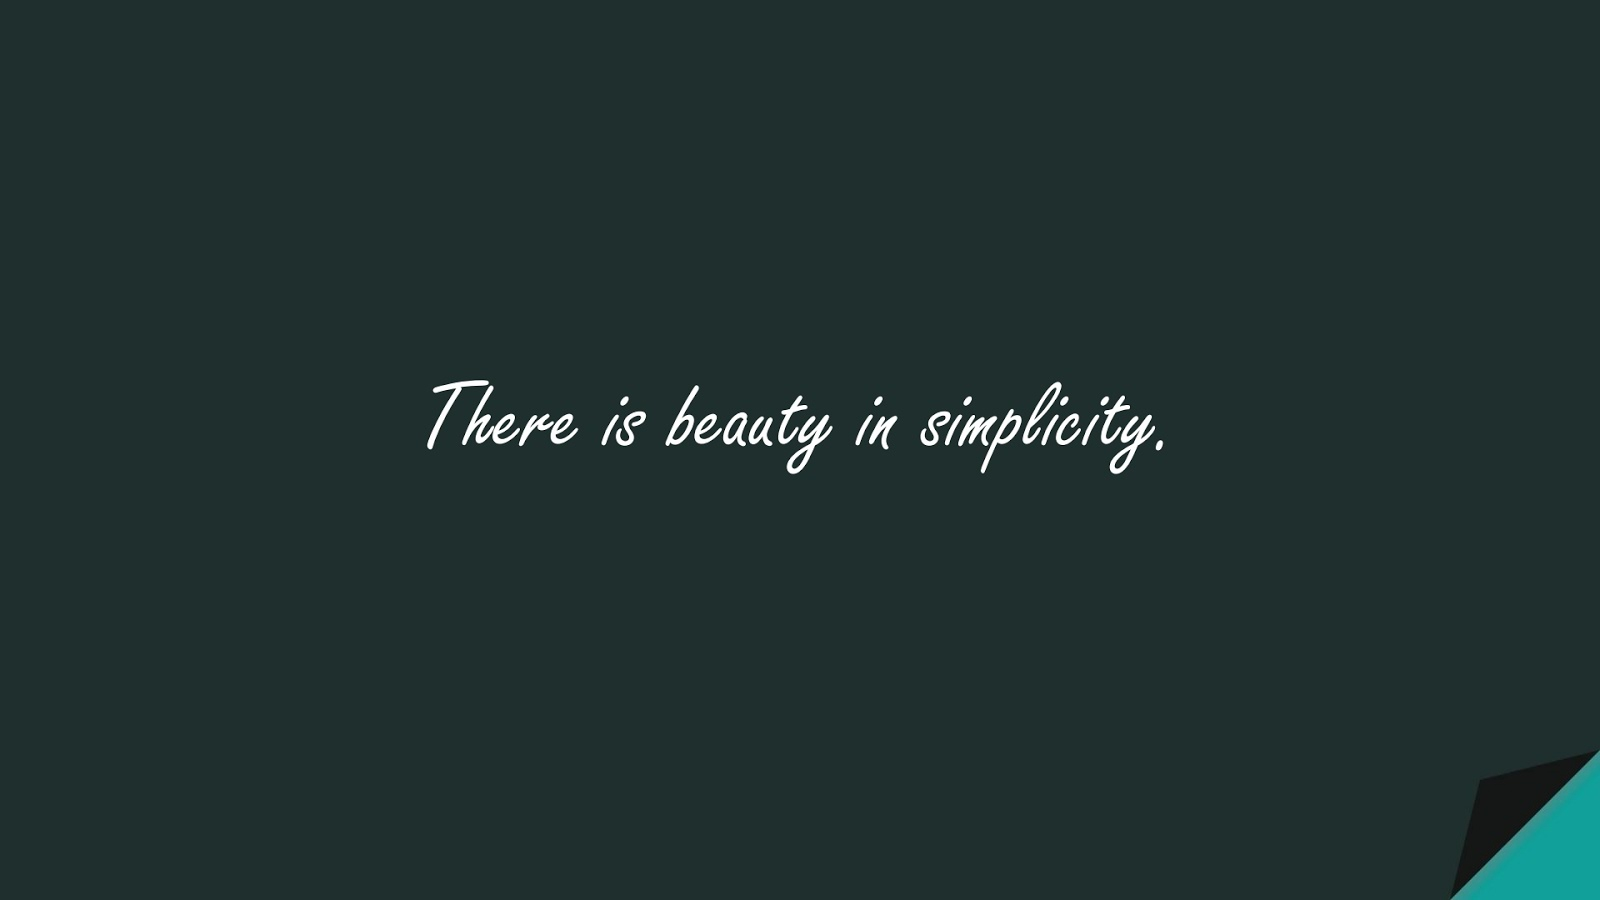 There is beauty in simplicity.FALSE